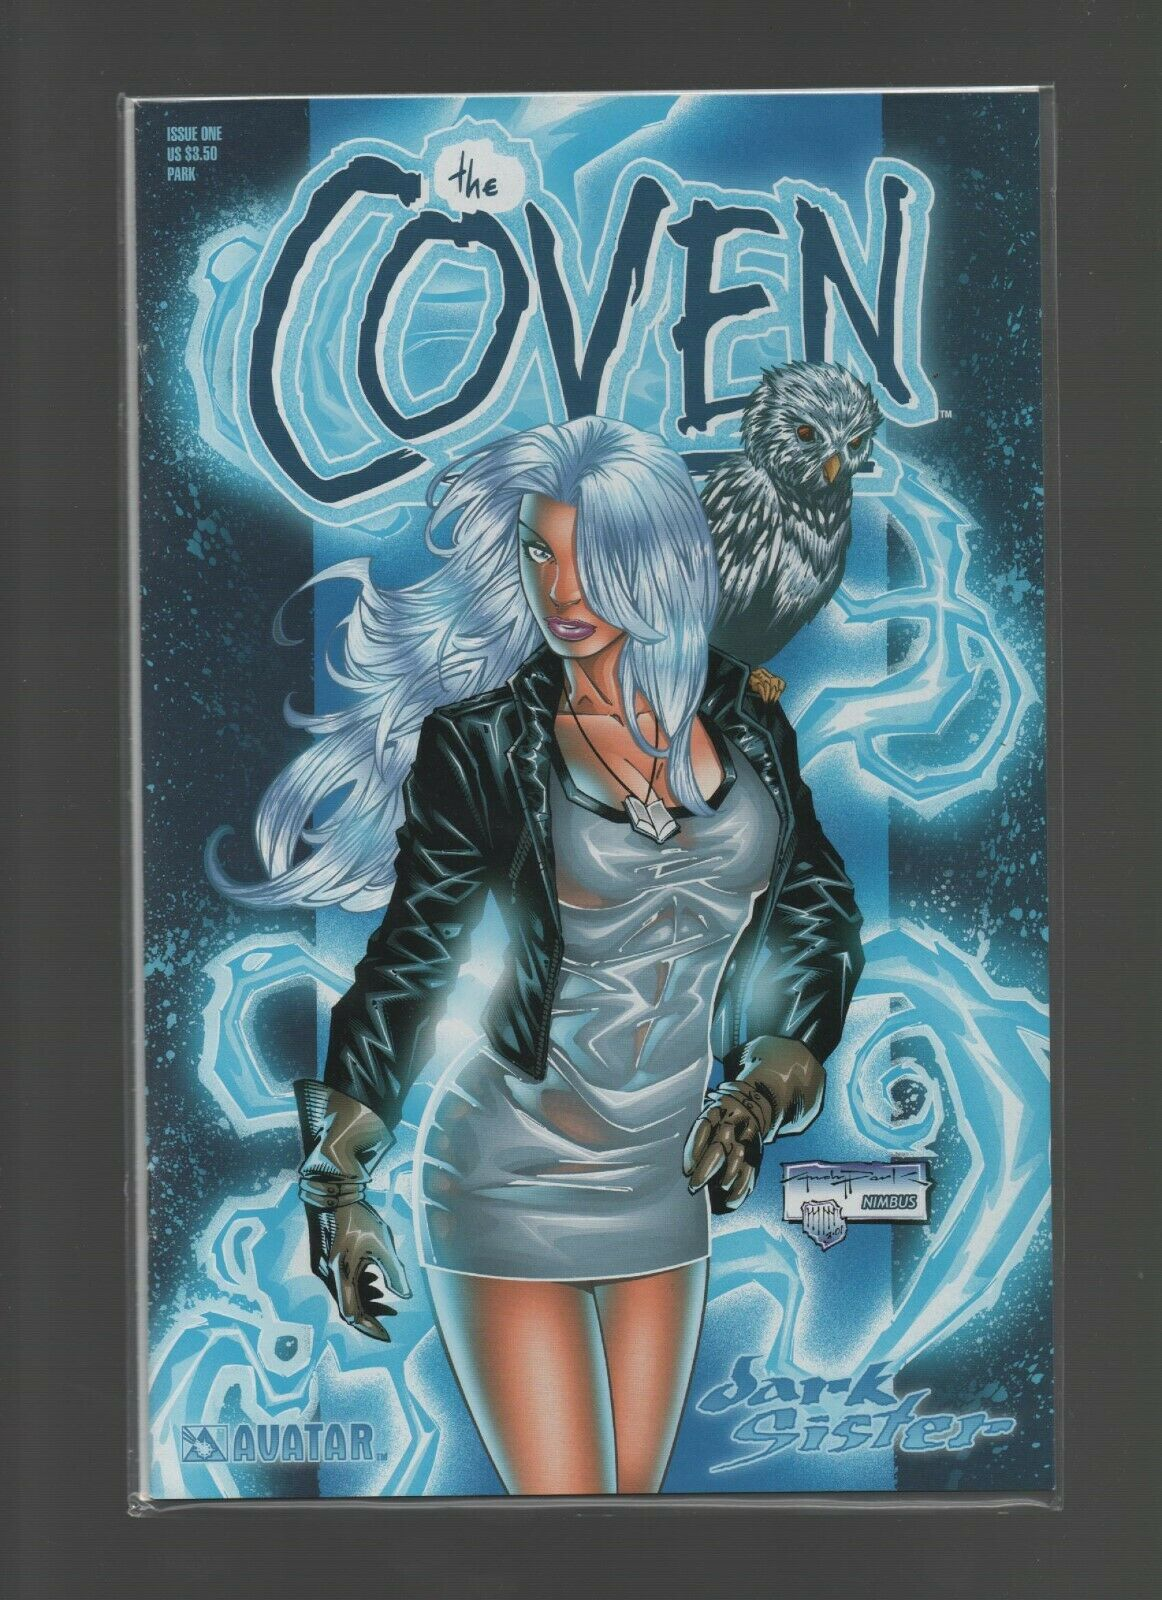 The Coven #1 - Avatar Comics - Dark Sister - Nimbus - We Combine Shipping. image 1